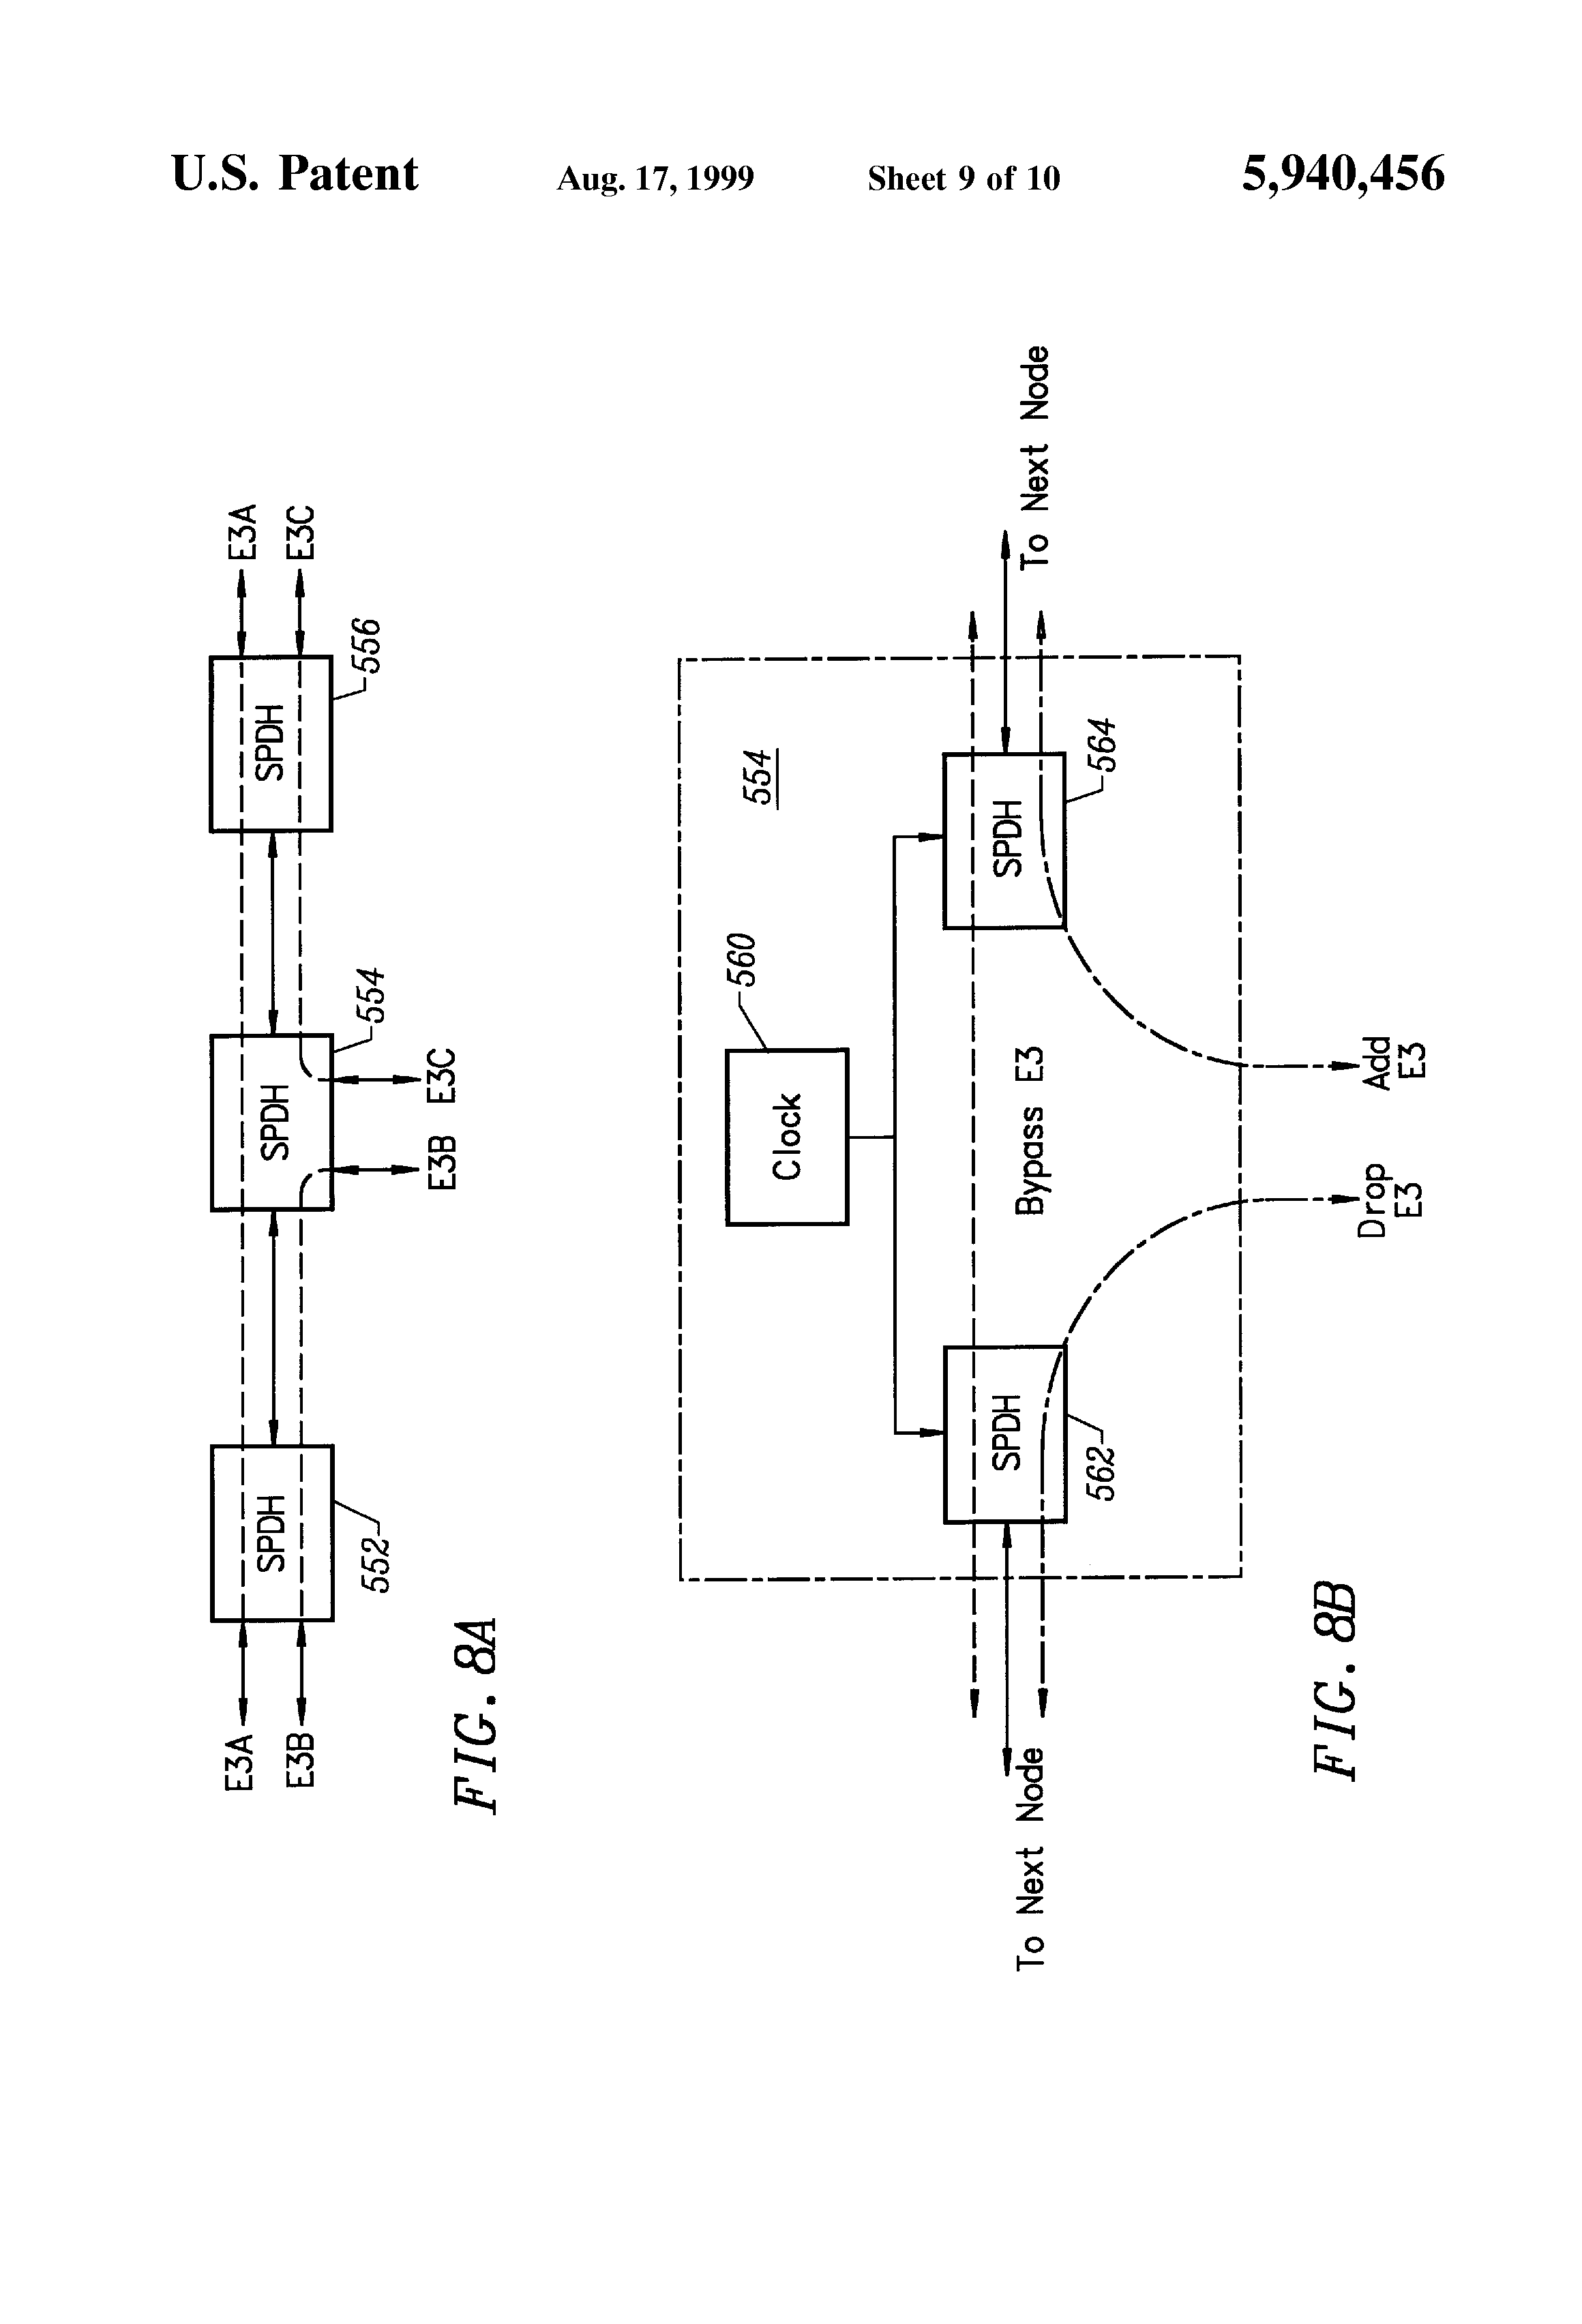 Patent Us5940456 Synchronous Plesiochronous Digital Hierarchy General Block Diagram Of Multiplexer Drawing